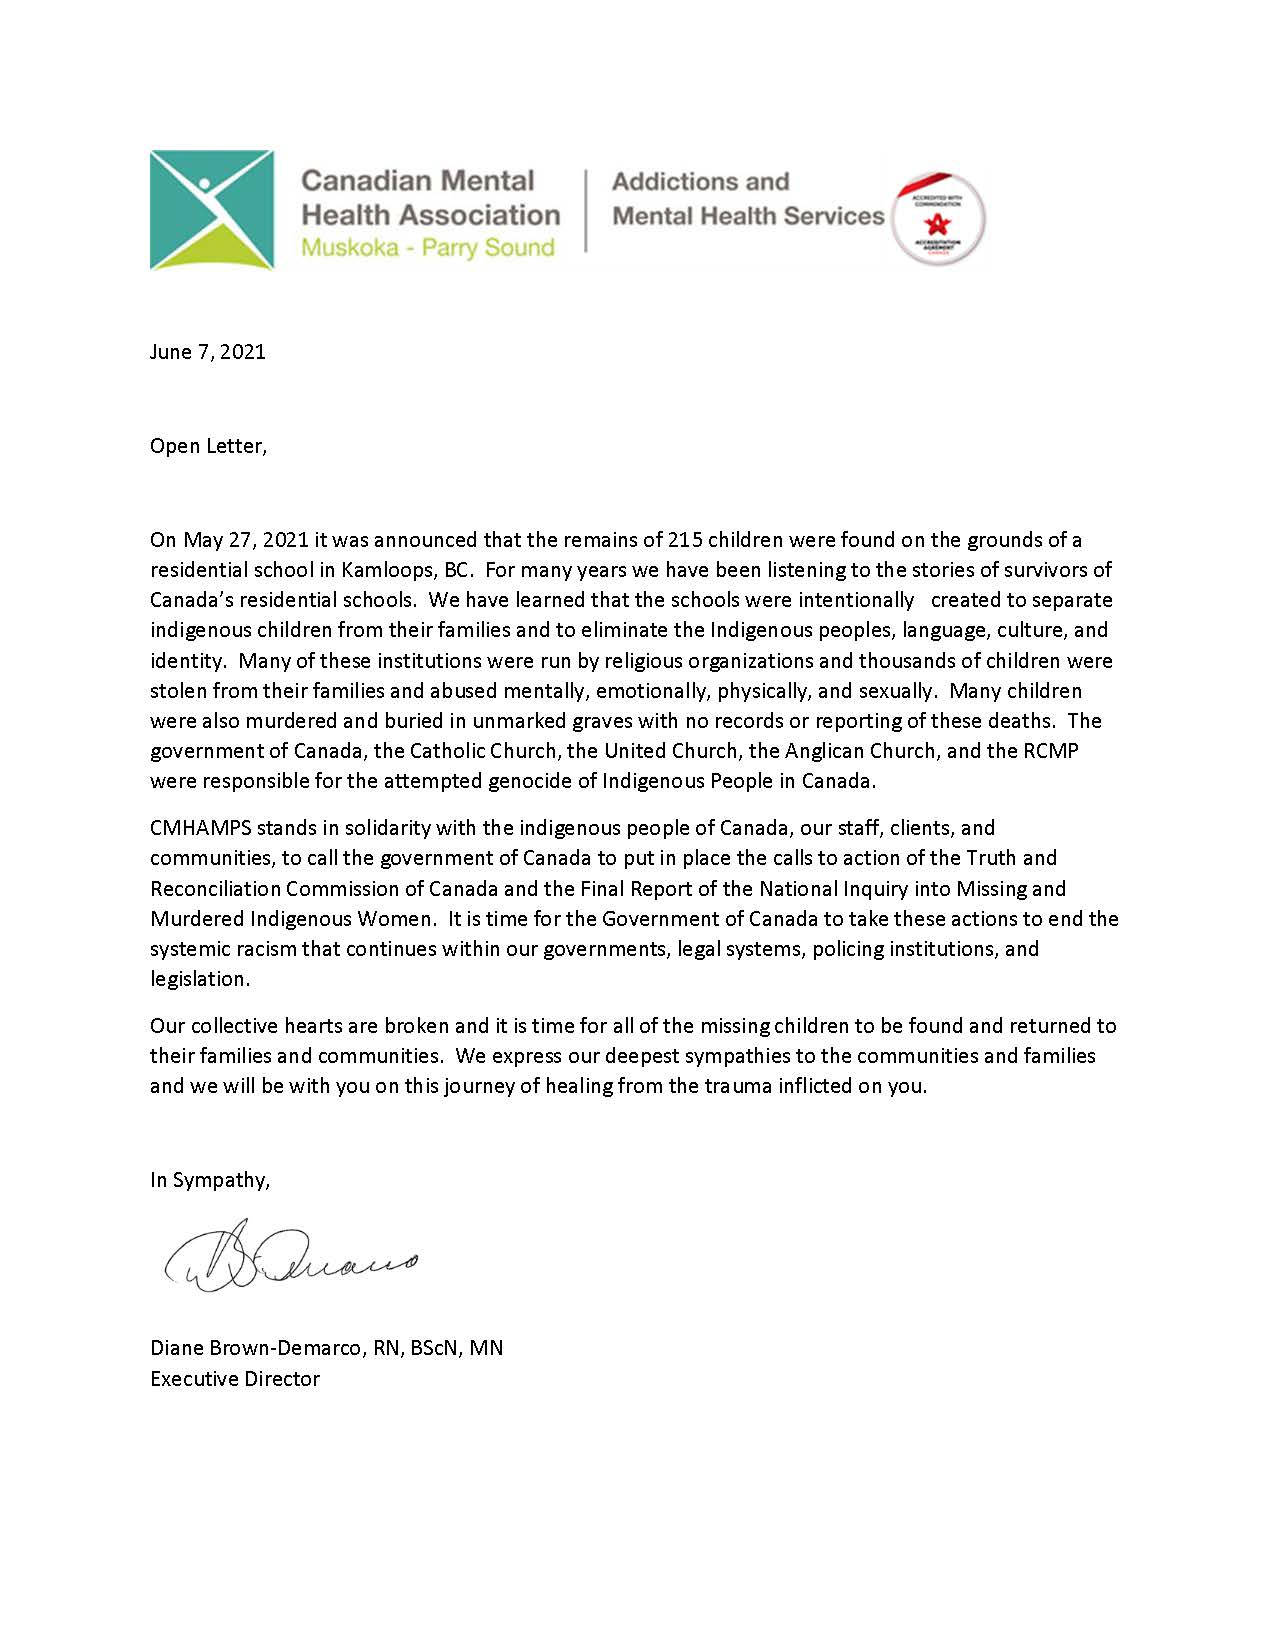 Letter from Executive Director in response to Indigenous children found in Kamloops BC